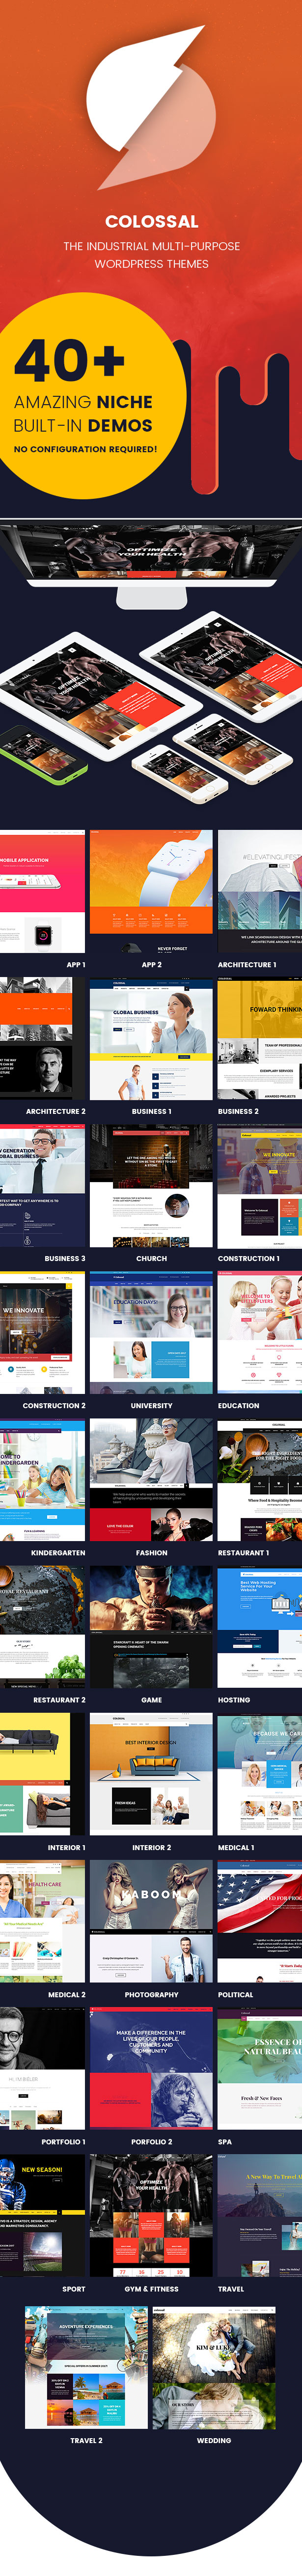 Colossal - Industrielles Mehrzweck-WordPress-Theme - 6